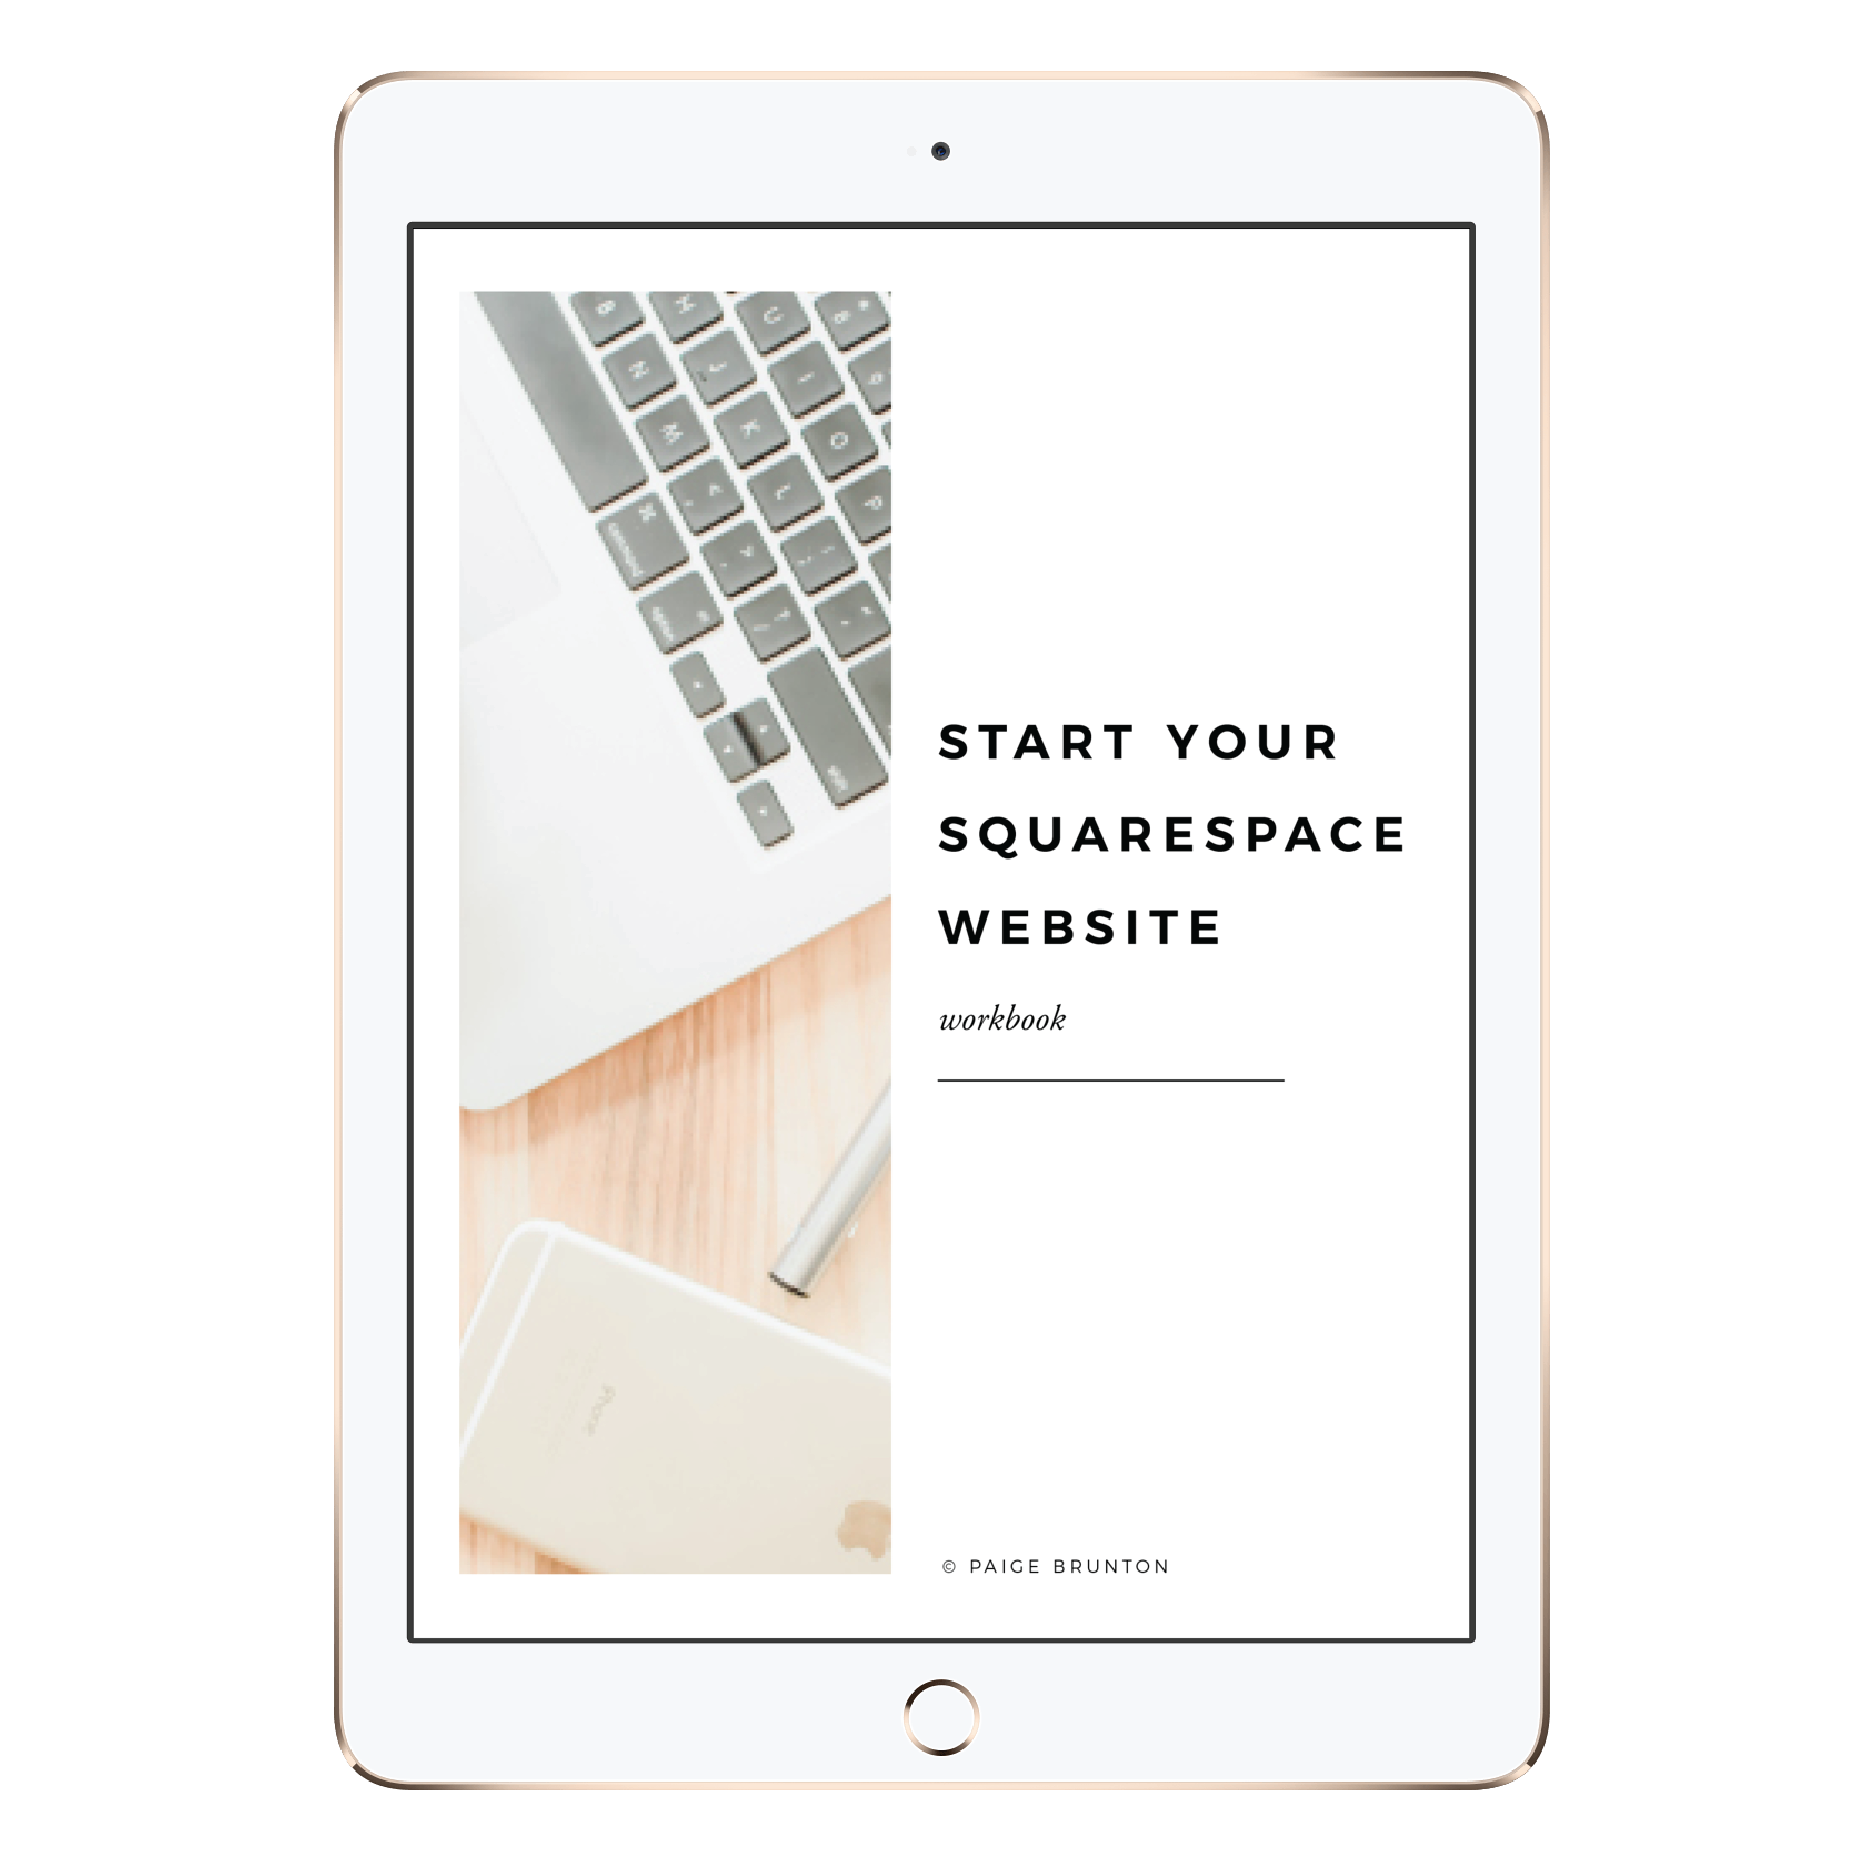 start your squarespace site workbook download